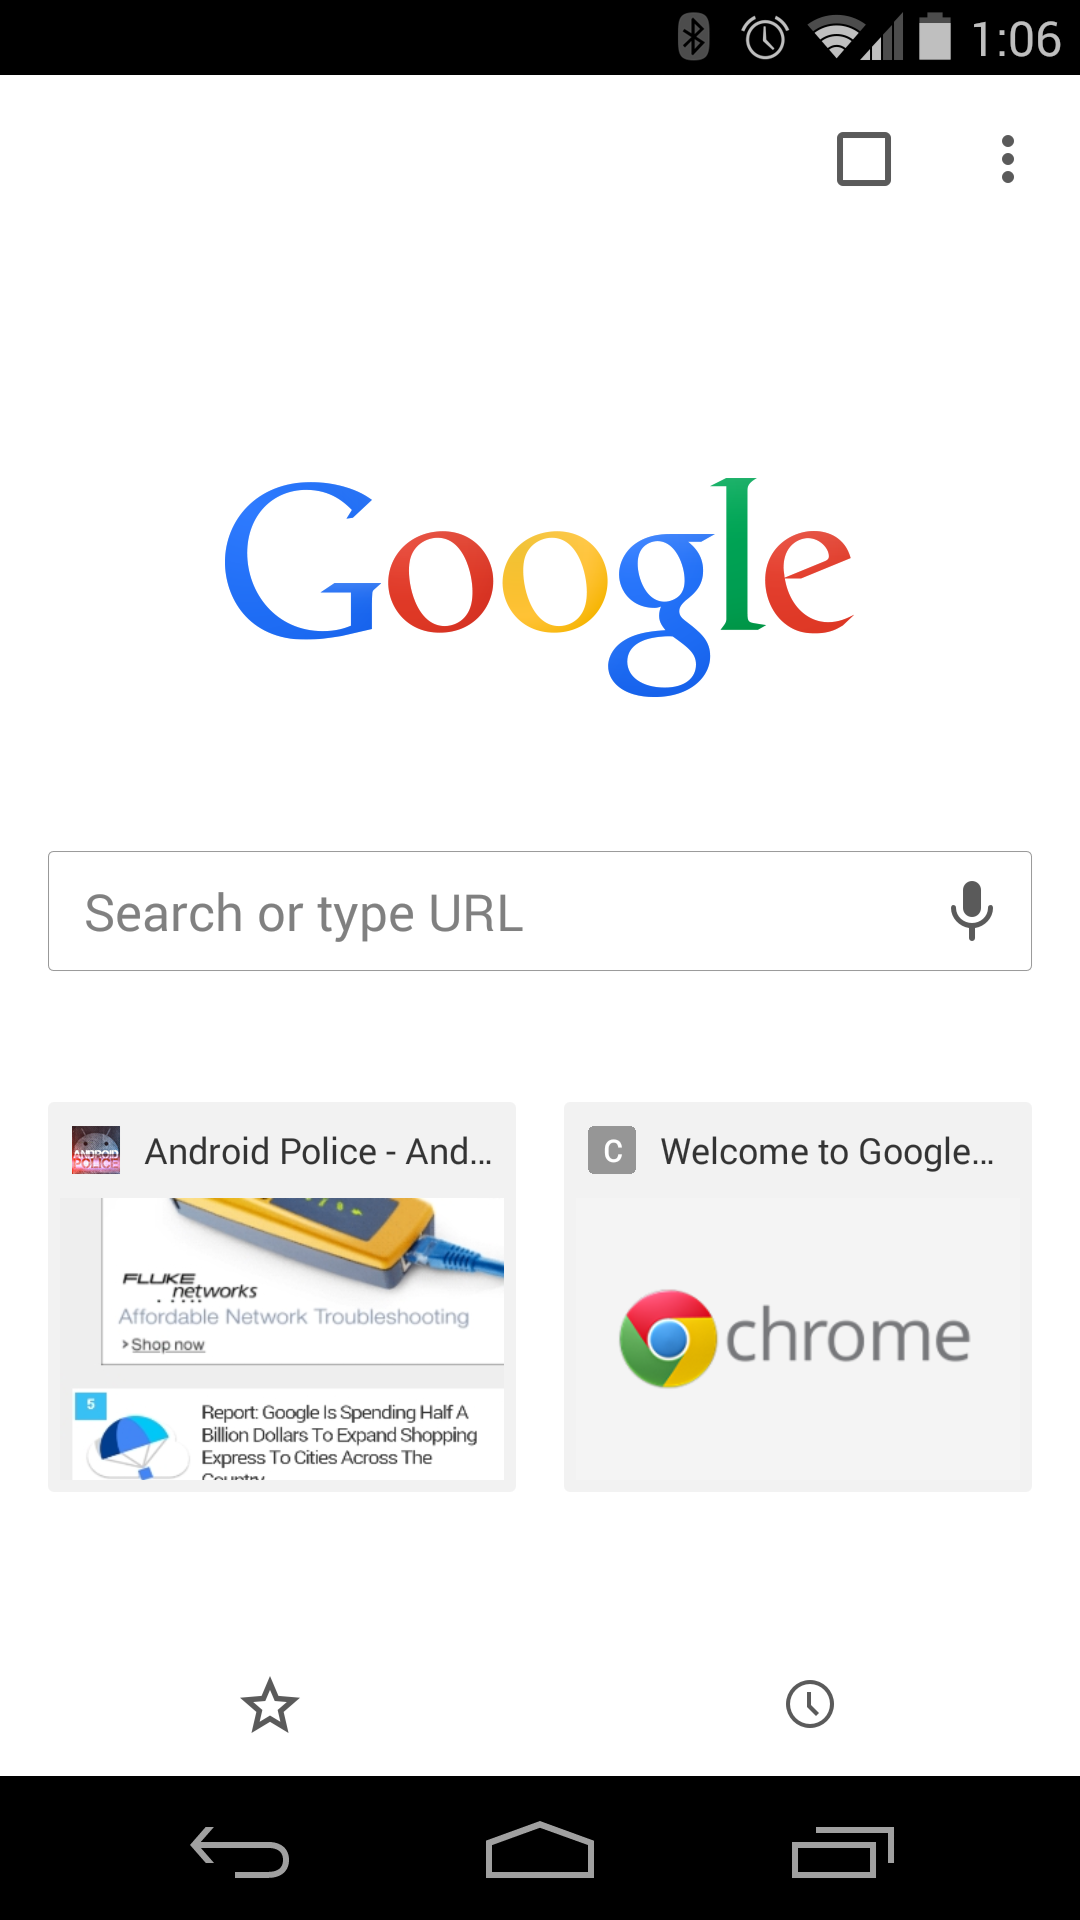 Chrome Beta Updated To v37 With Material Design Makeover, Simplified